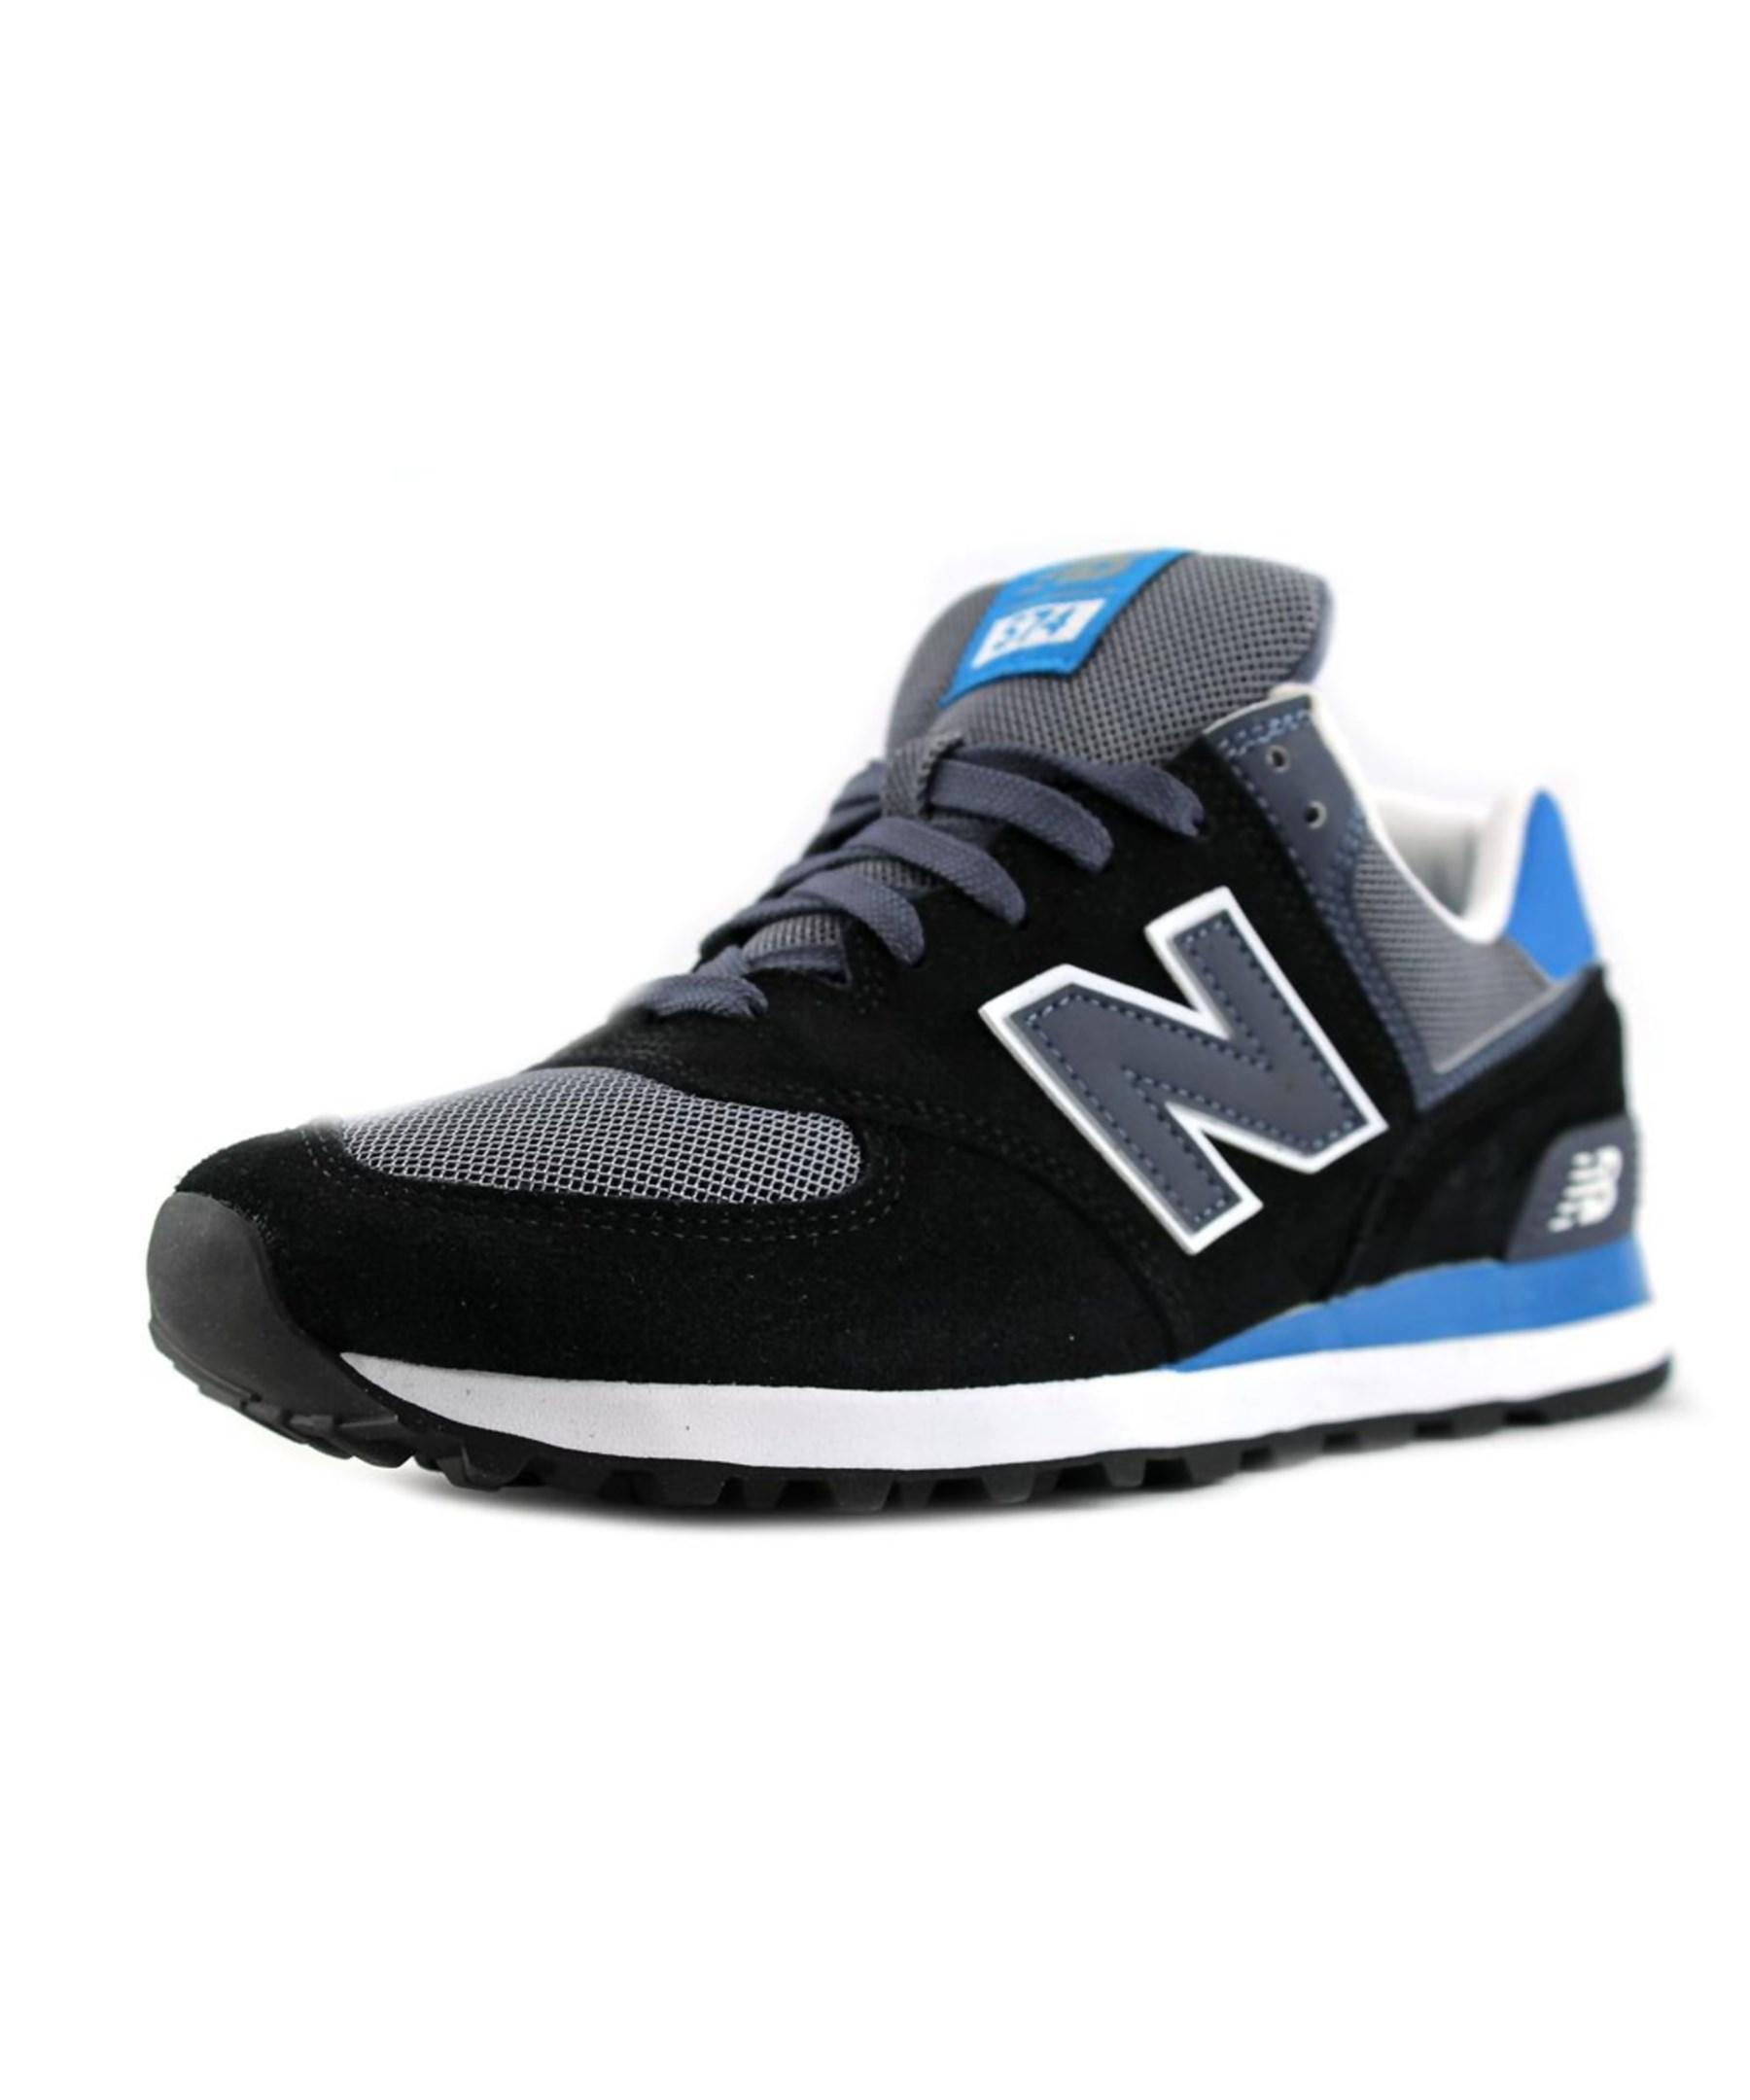 new balance ml574 suede fashion sneakers in black for men lyst. Black Bedroom Furniture Sets. Home Design Ideas